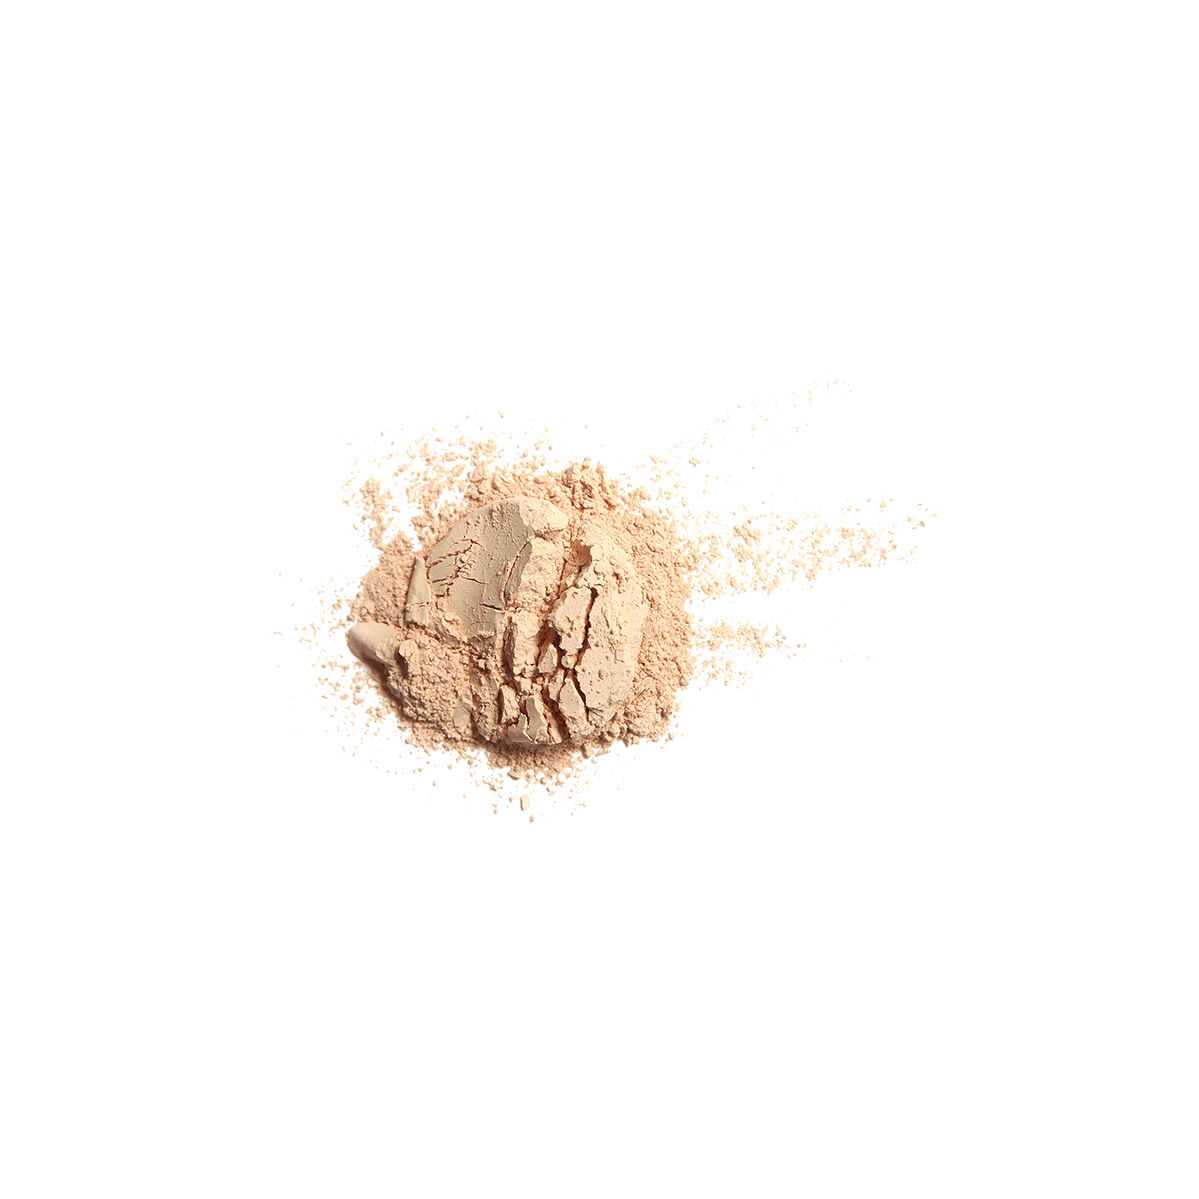 collab-set-the-stage-ultra-fine-loose-setting-powder-porcelainivory-shade.png